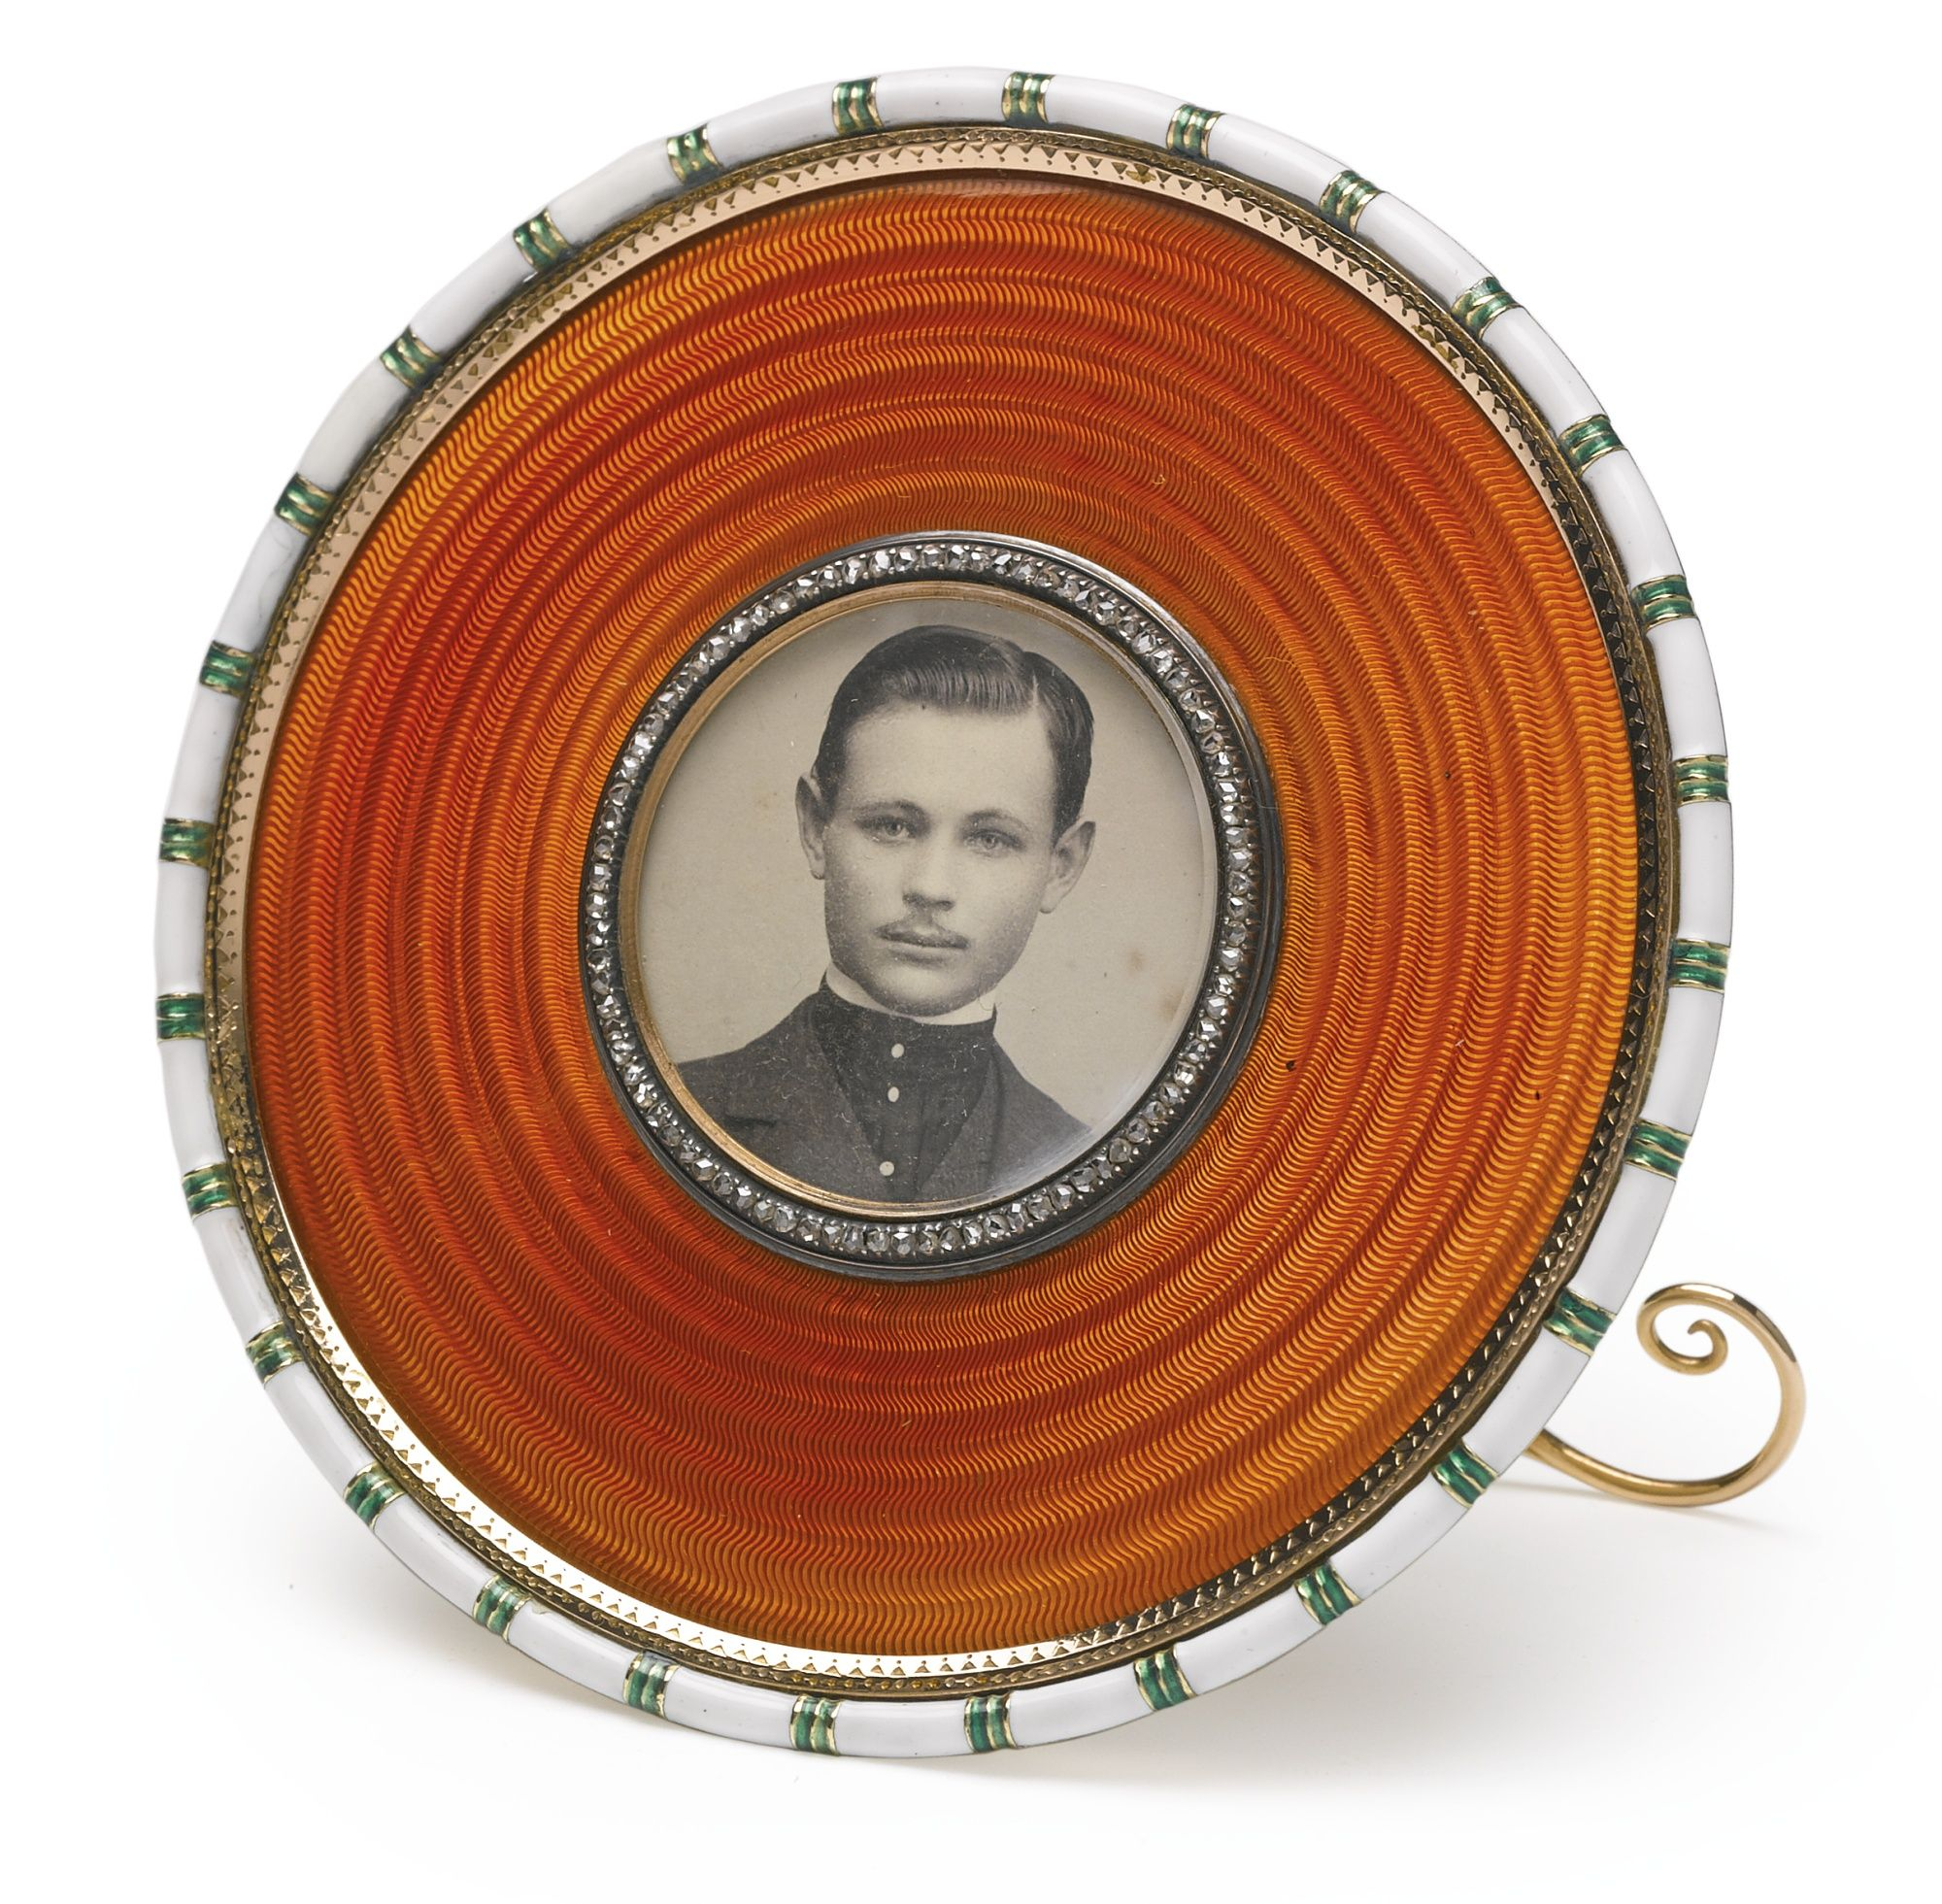 A FABERGÉ GOLD AND ENAMEL PHOTOGRAPH FRAME, WORKMASTER MICHAEL PERCHIN, ST. PETERSBURG, CIRCA 1895 circular, enameled in translucent apricot over concentric guilloché bands, the rim with opaque white enamel relieved by bands of green, the circular aperture with rose-cut diamond bezel, the ivory back with scrolling A-form gold strut, with workmaster's initials, Fabergé in Cyrillic, and 56 standard; also with scratched inventory number 54609, in fitted leather Wartski case diameter 3 in.; 7.6…